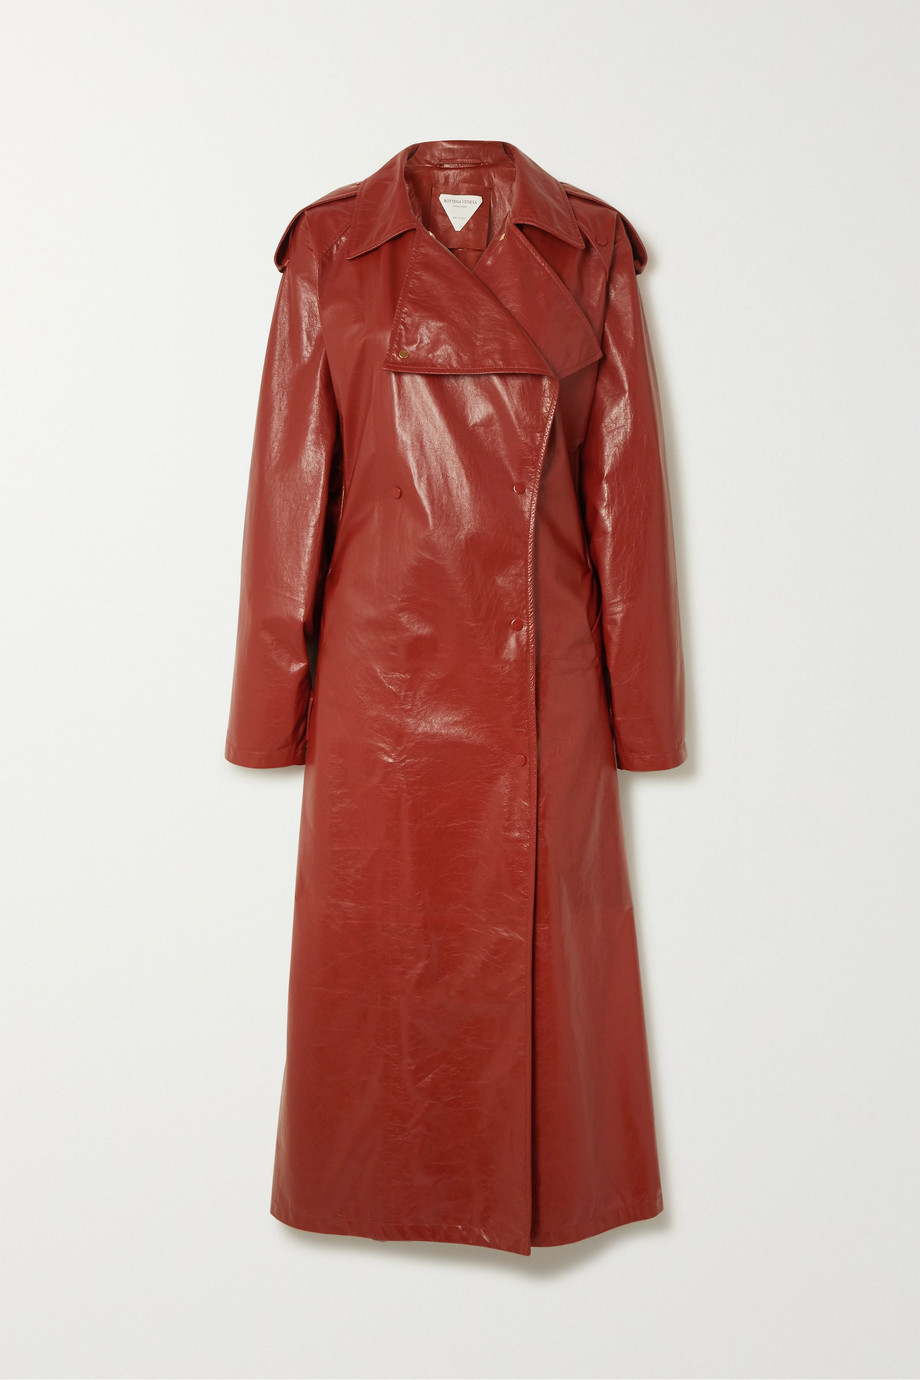 BOTTEGA VENETA Crinkled glossed leather trench coat